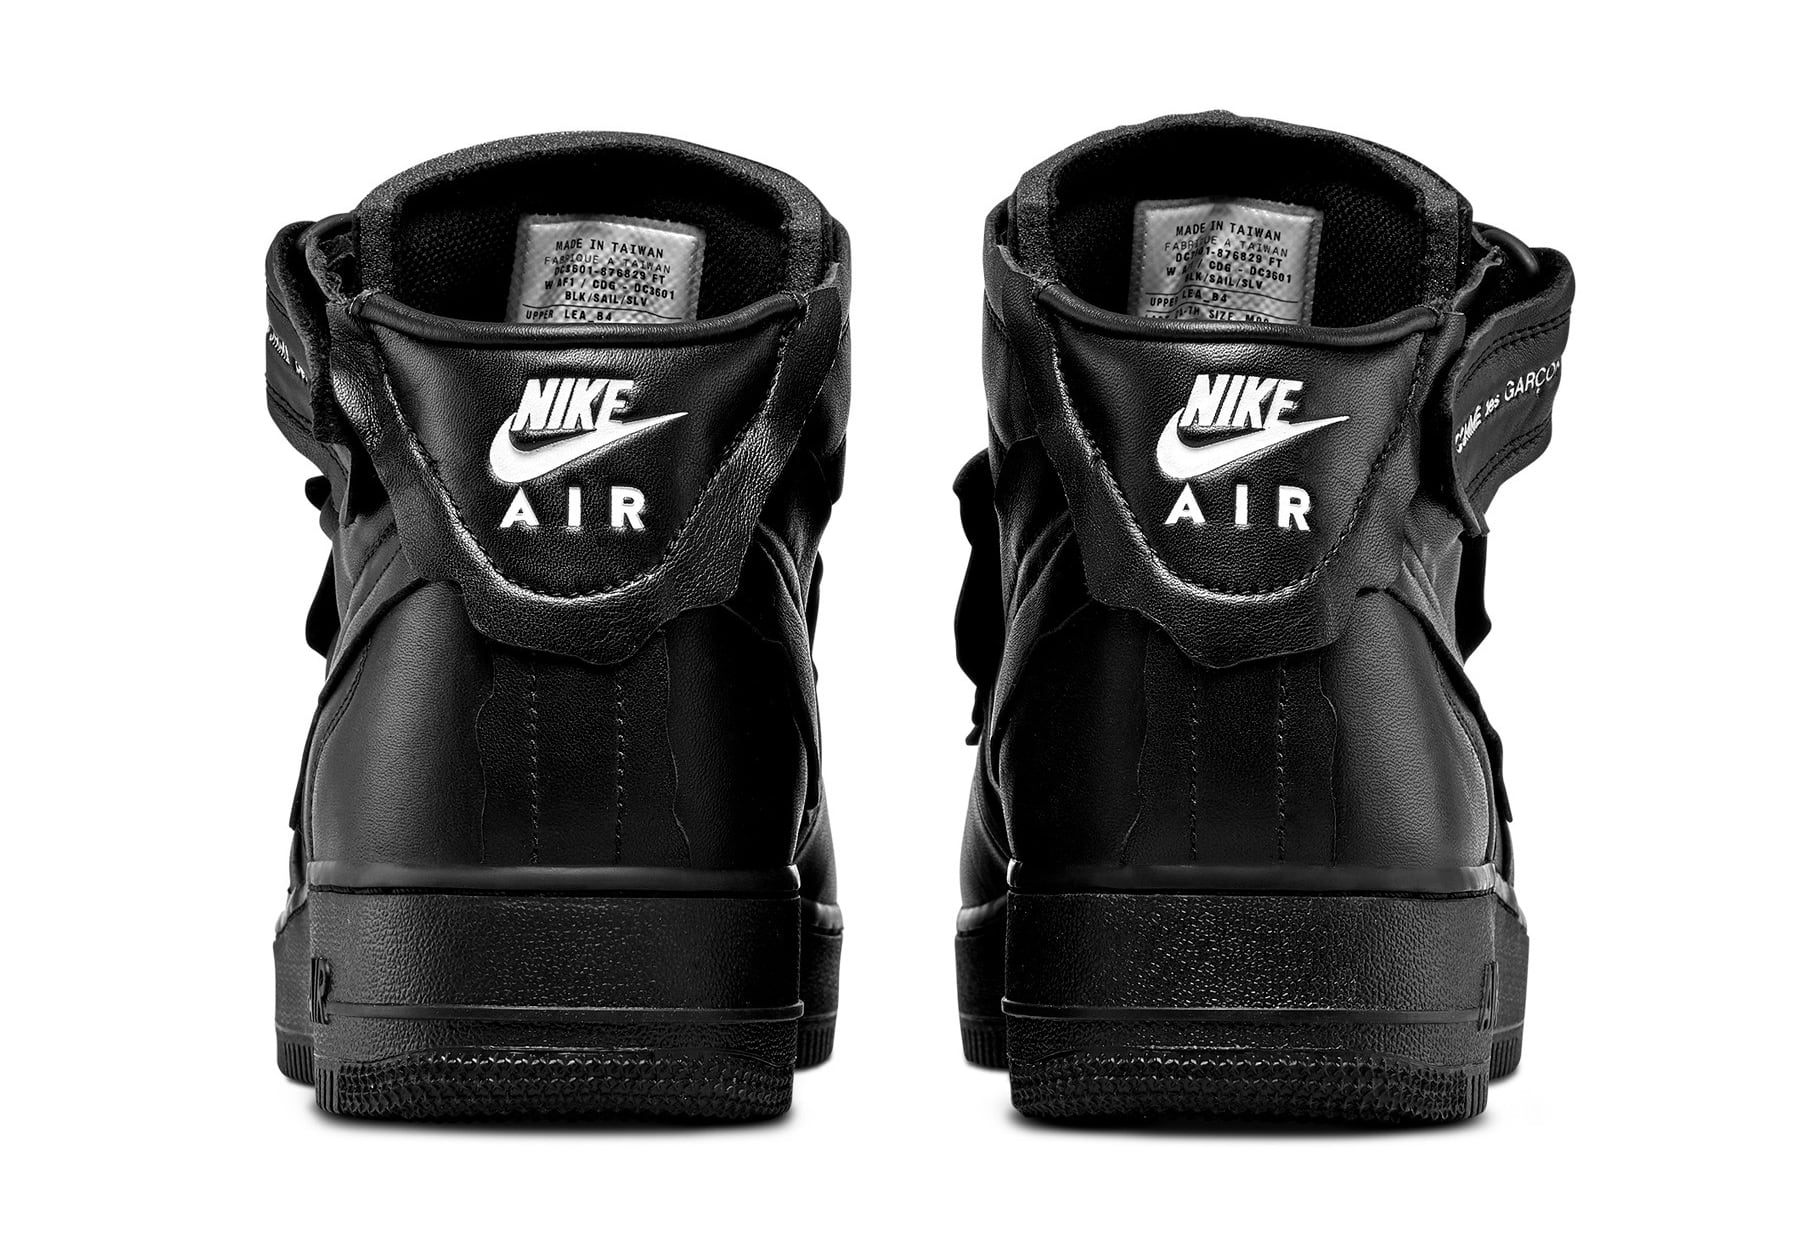 Comme Des Garcons x Nike Air Force 1 Mid 'Black' F/W 20 Heel